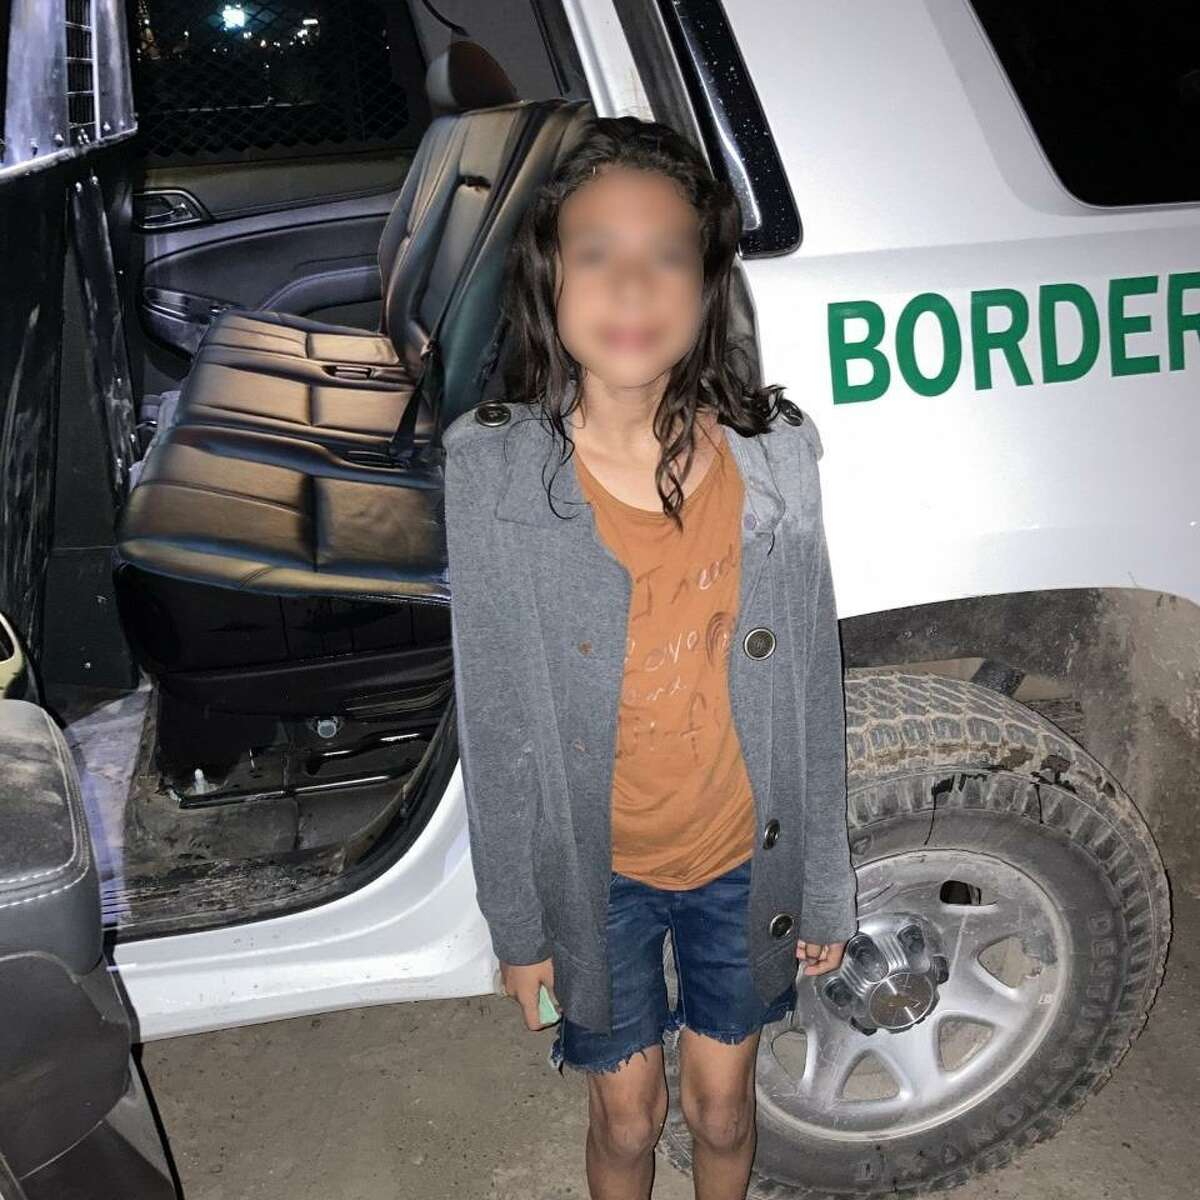 U.S. Border Patrol agents said smugglers abandoned this girl on the riverbanks as they returned to Mexico. An Army soldier rescued her after the soldier saw her struggling to get out of the river due to the swift river current and steep riverbank.